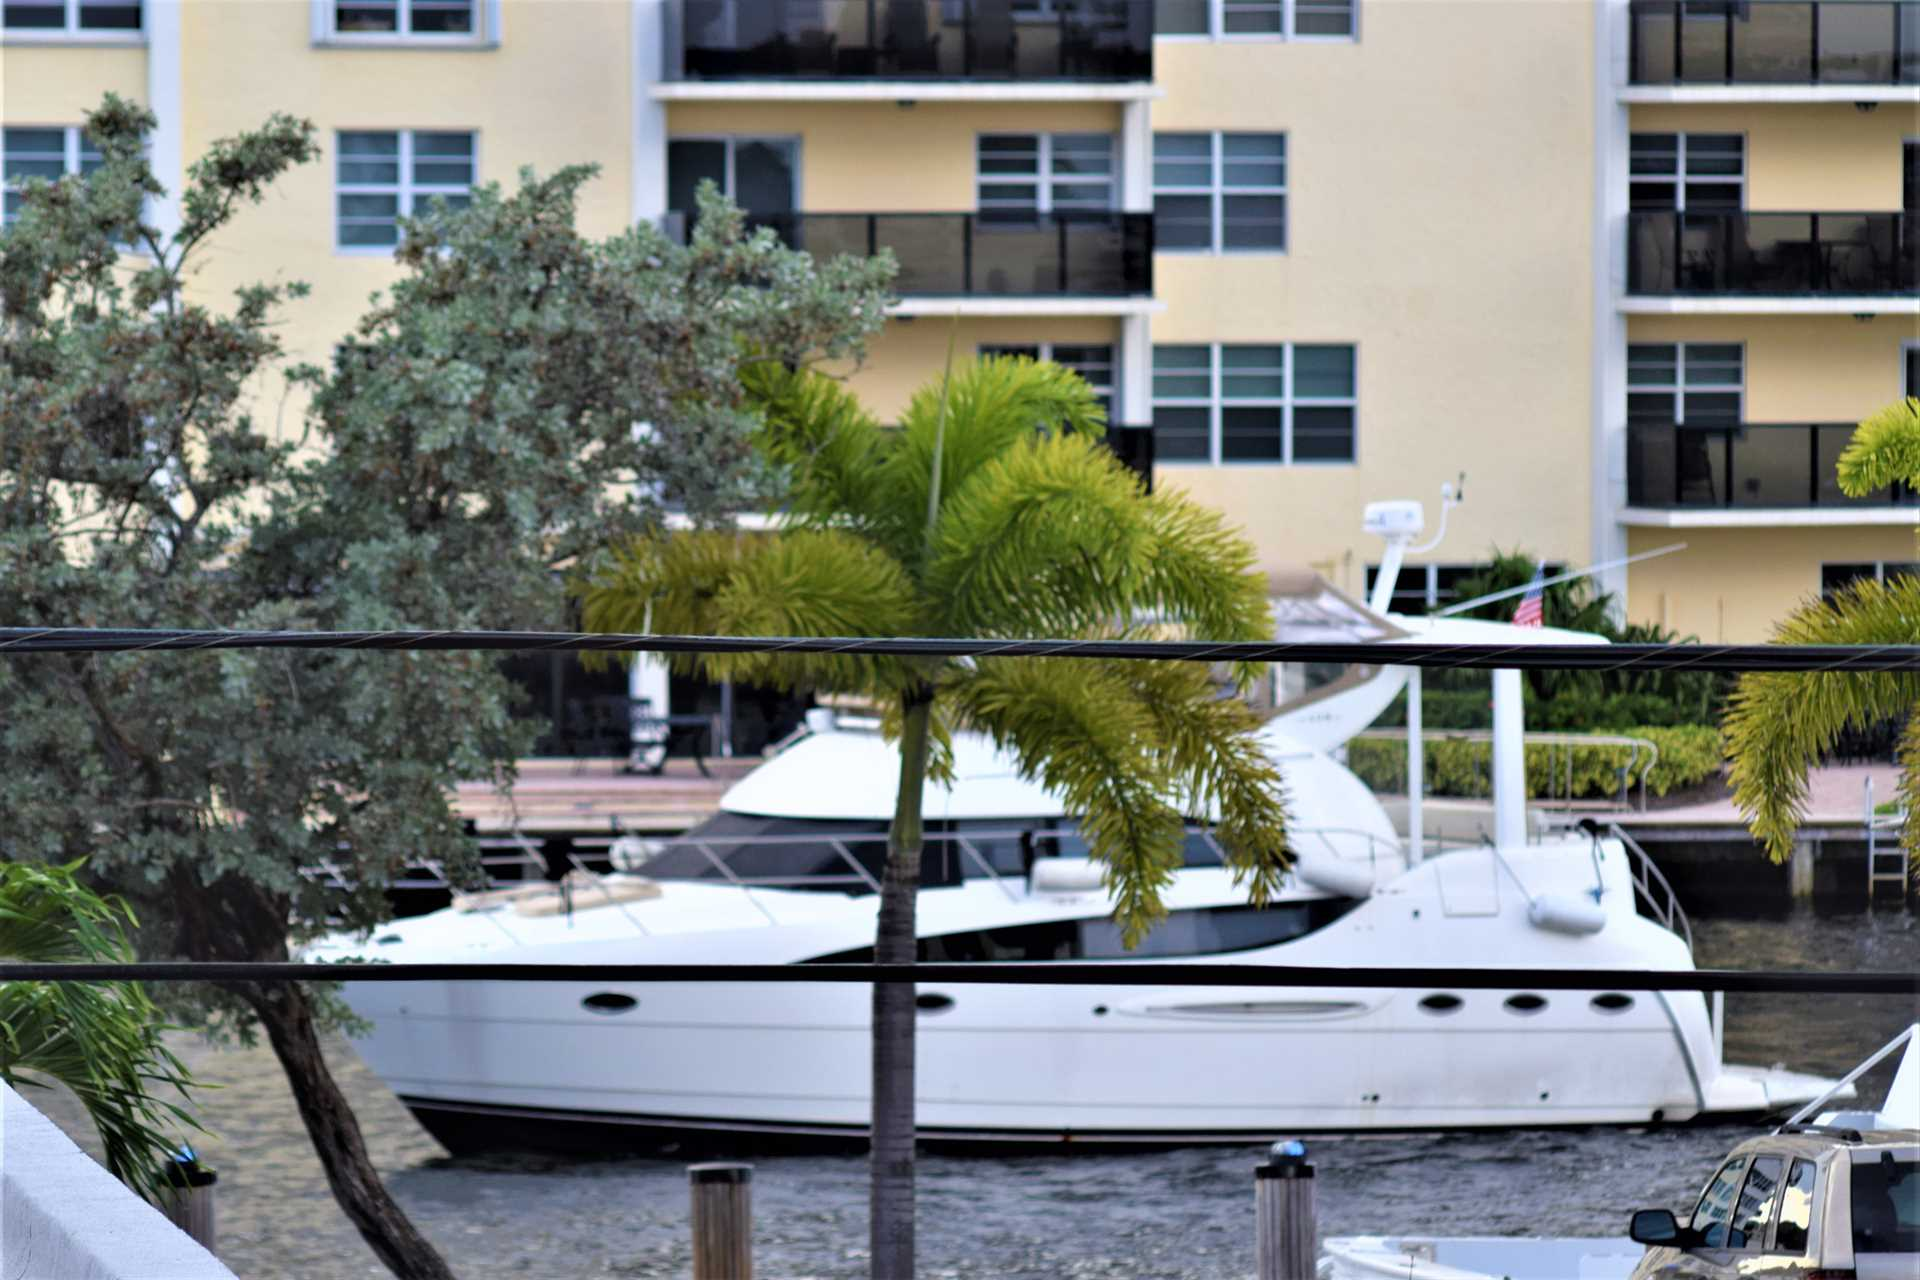 Watch yachts cruise the intracoastal waterway from your sun